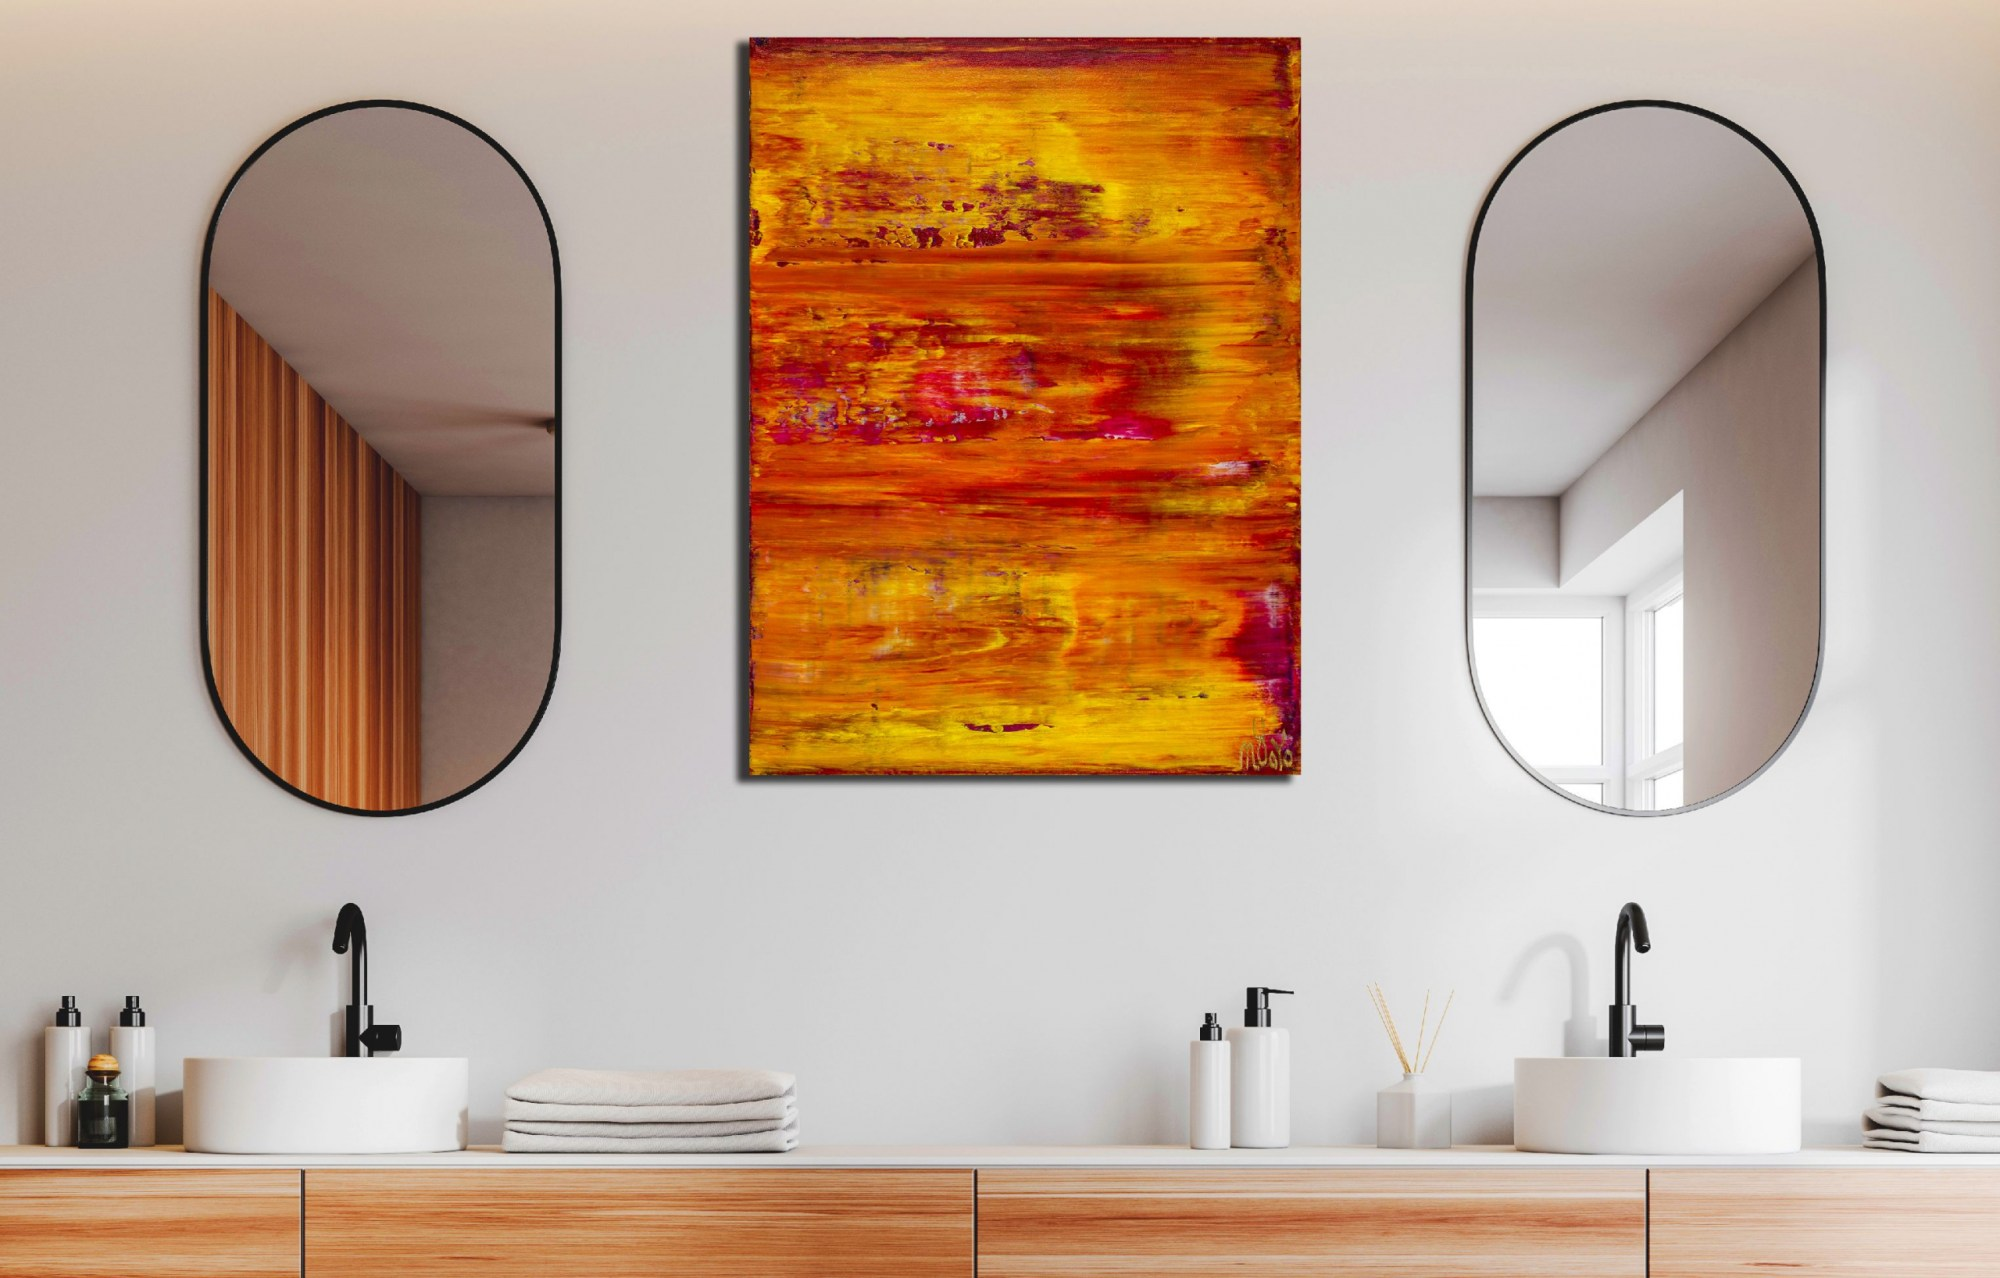 Room view - Fiery Dimensions 4 (2020) by Nestor Toro